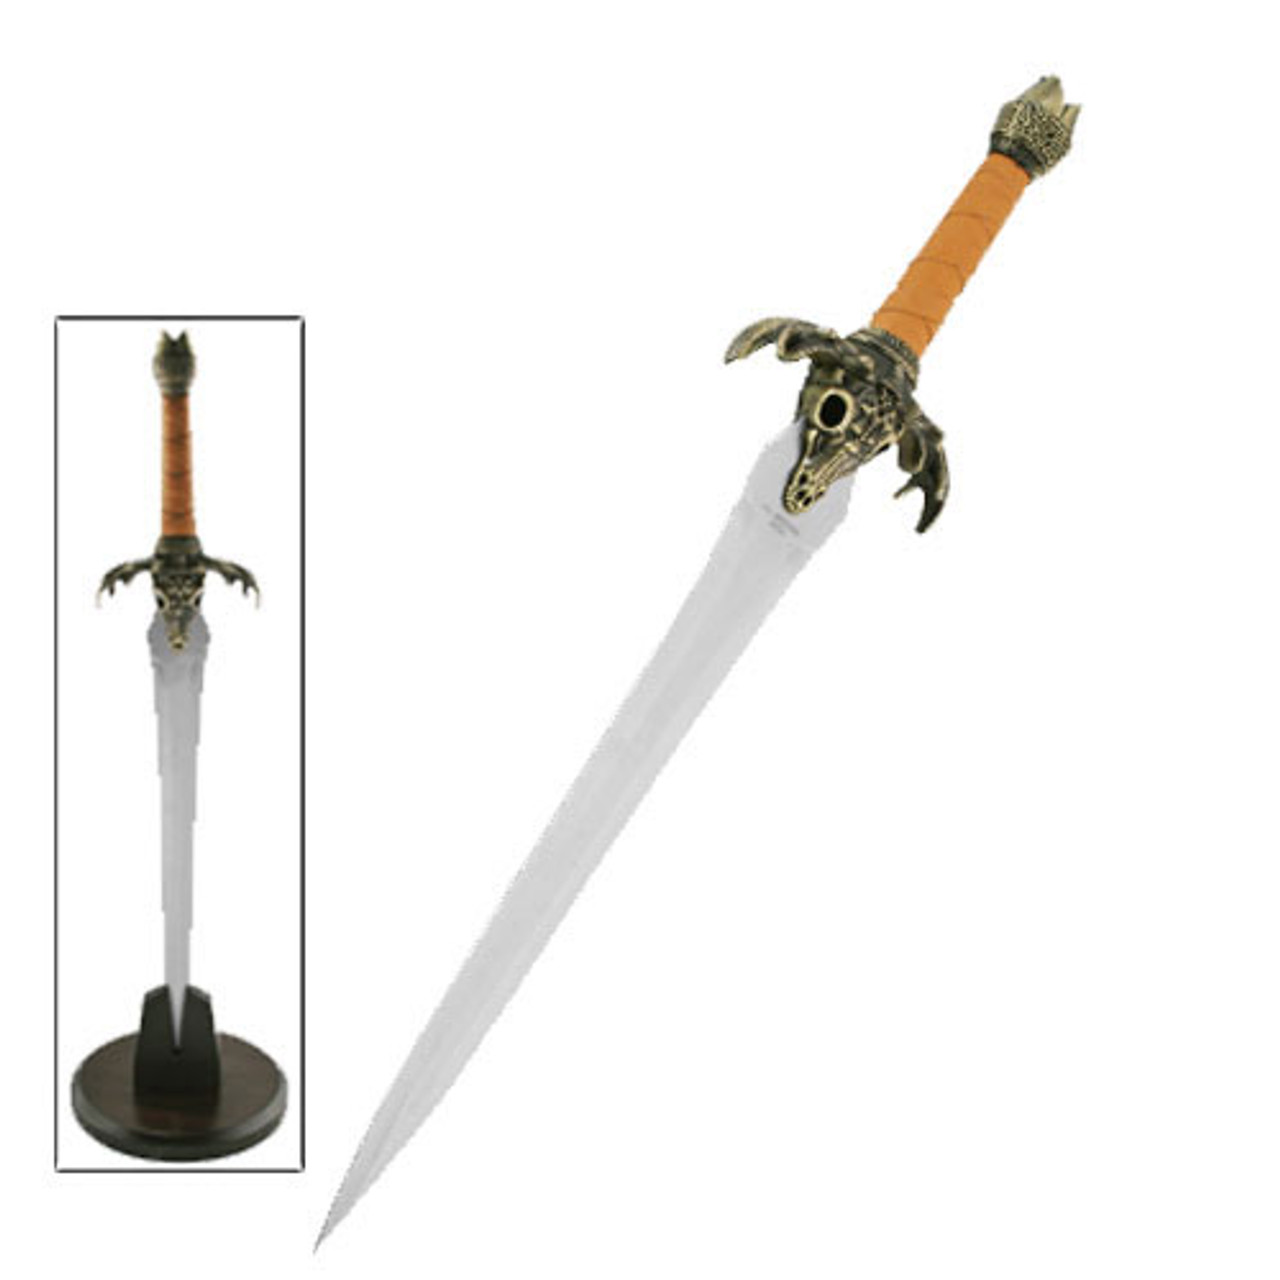 Conan Fathers Sword Dagger Display Replica with Table Stand